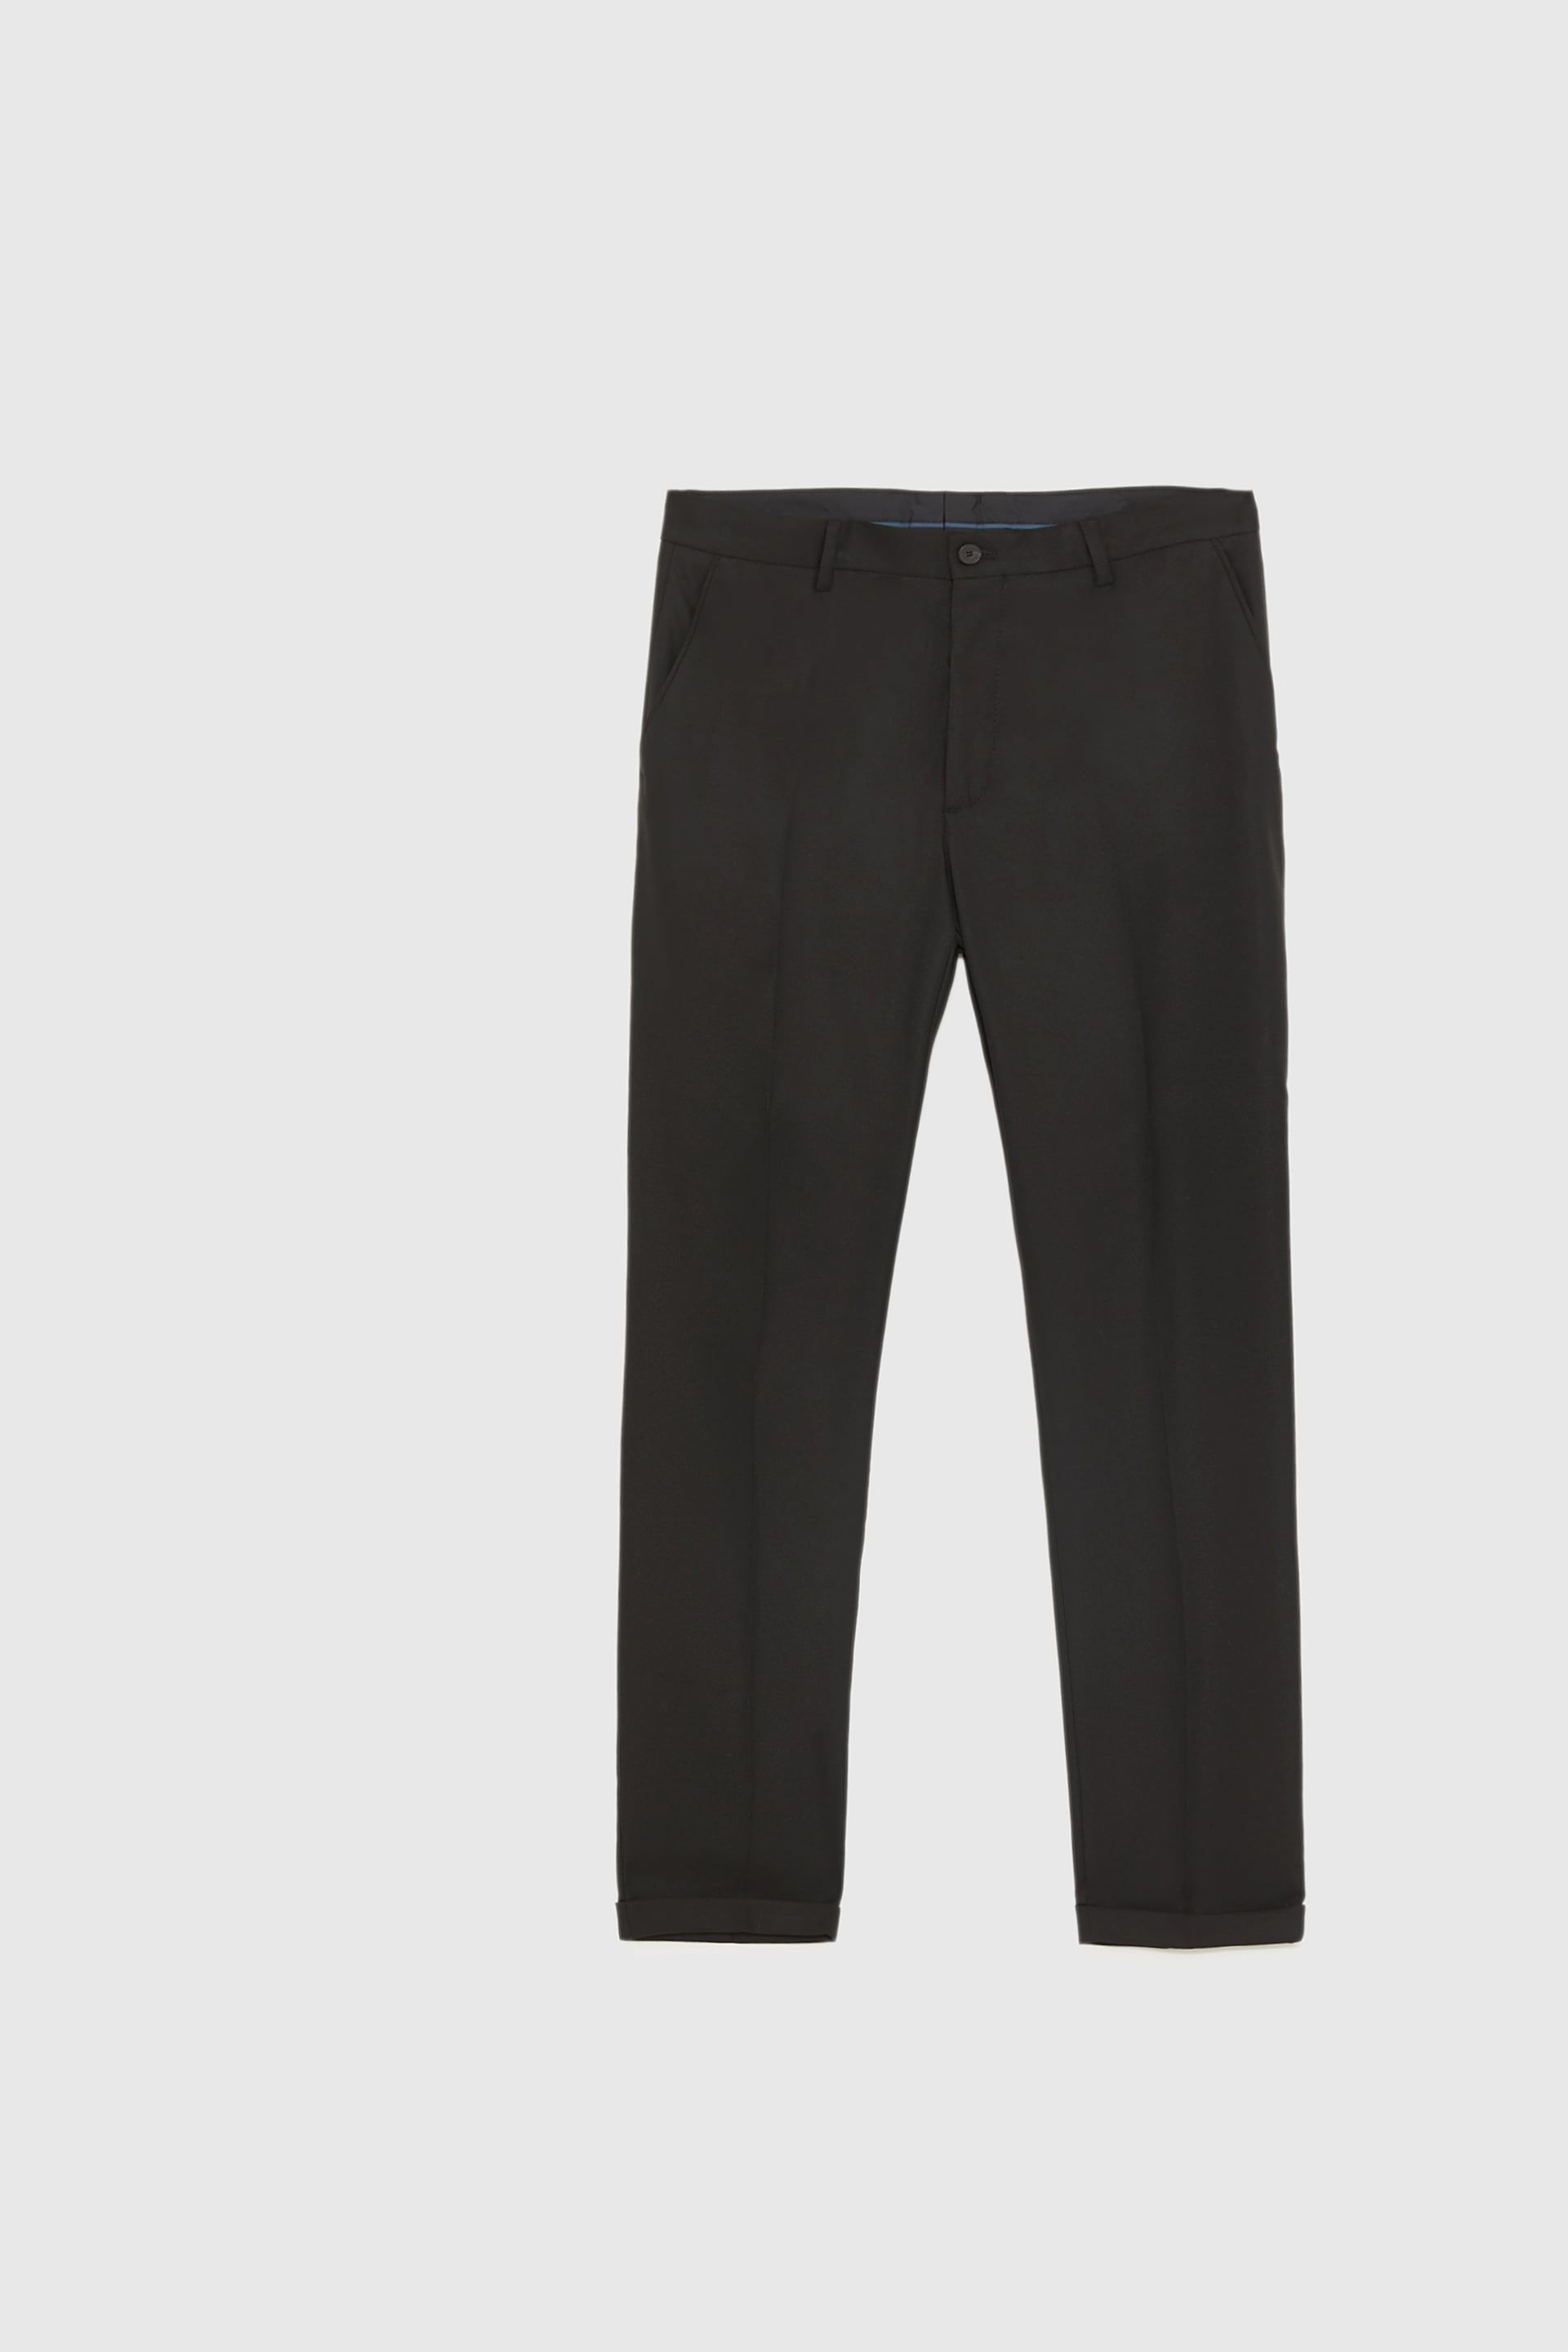 eafac594 TEXTURED CROPPED SUIT TROUSERS - View All-TROUSERS-MAN | ZARA United Kingdom